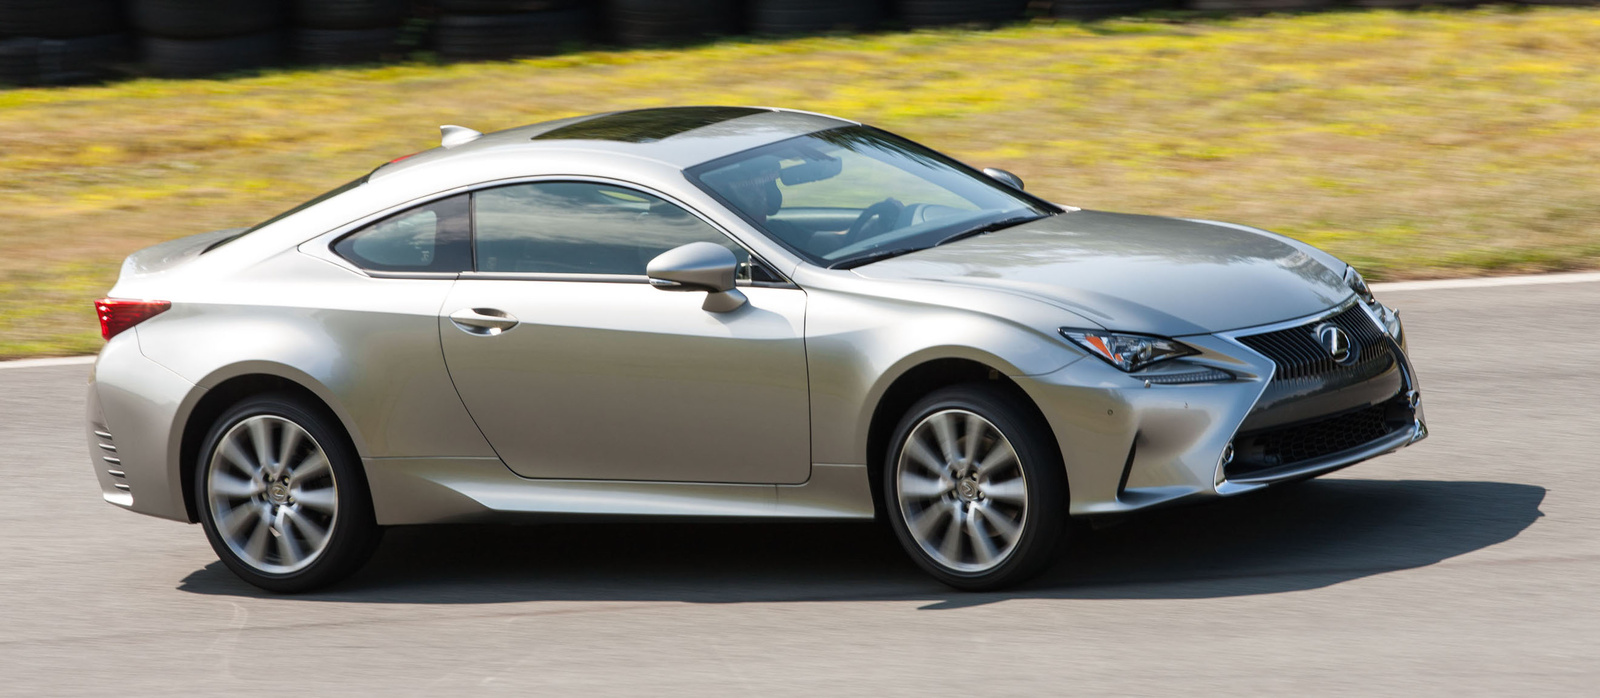 Lexus rc coupe awd